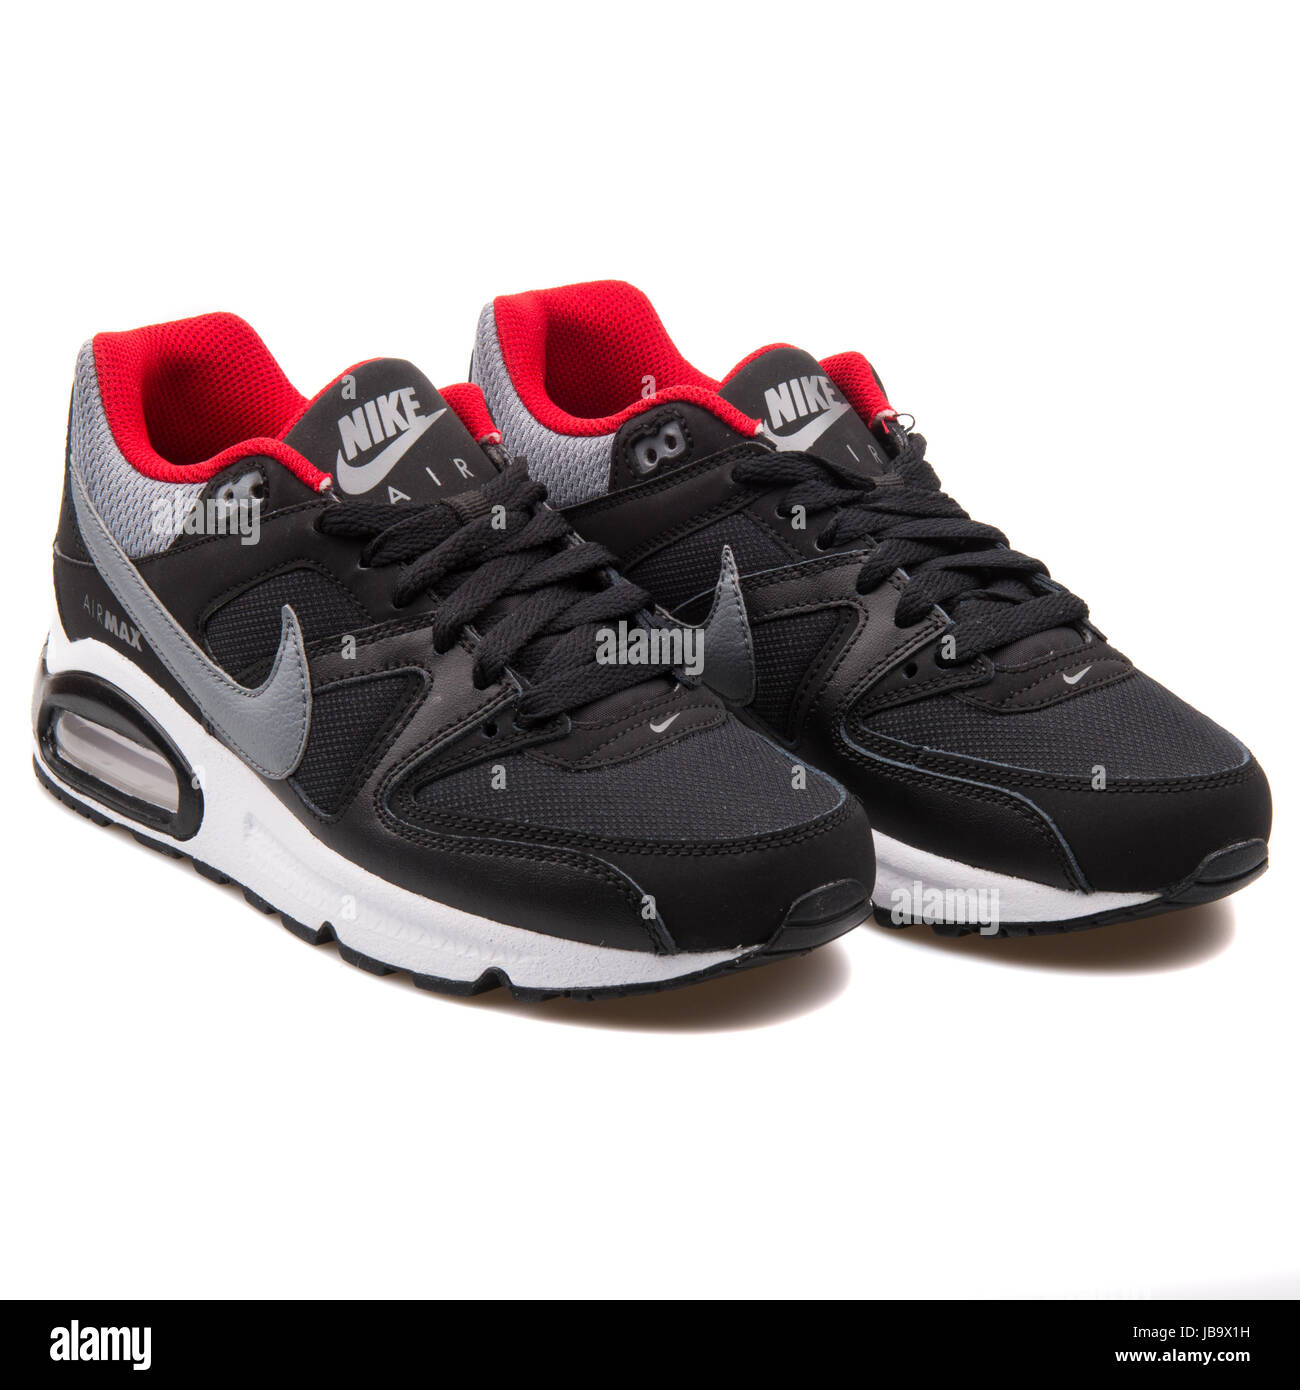 Nike Air Max Command (GS) Black, Grey and Red Youth's Sports